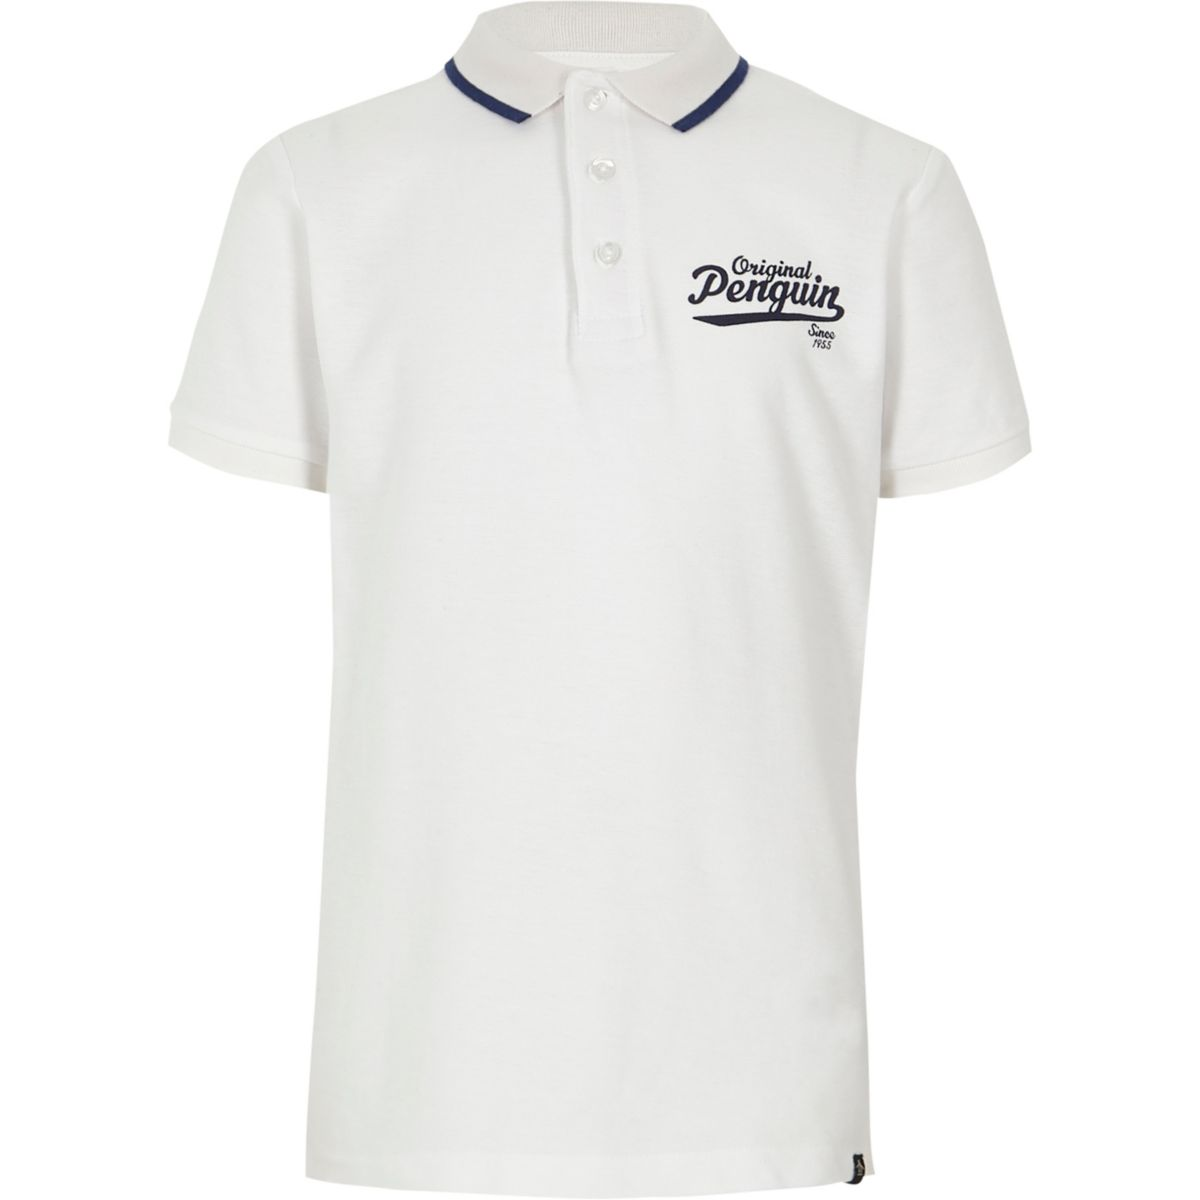 Boys white Original Penguin polo shirt